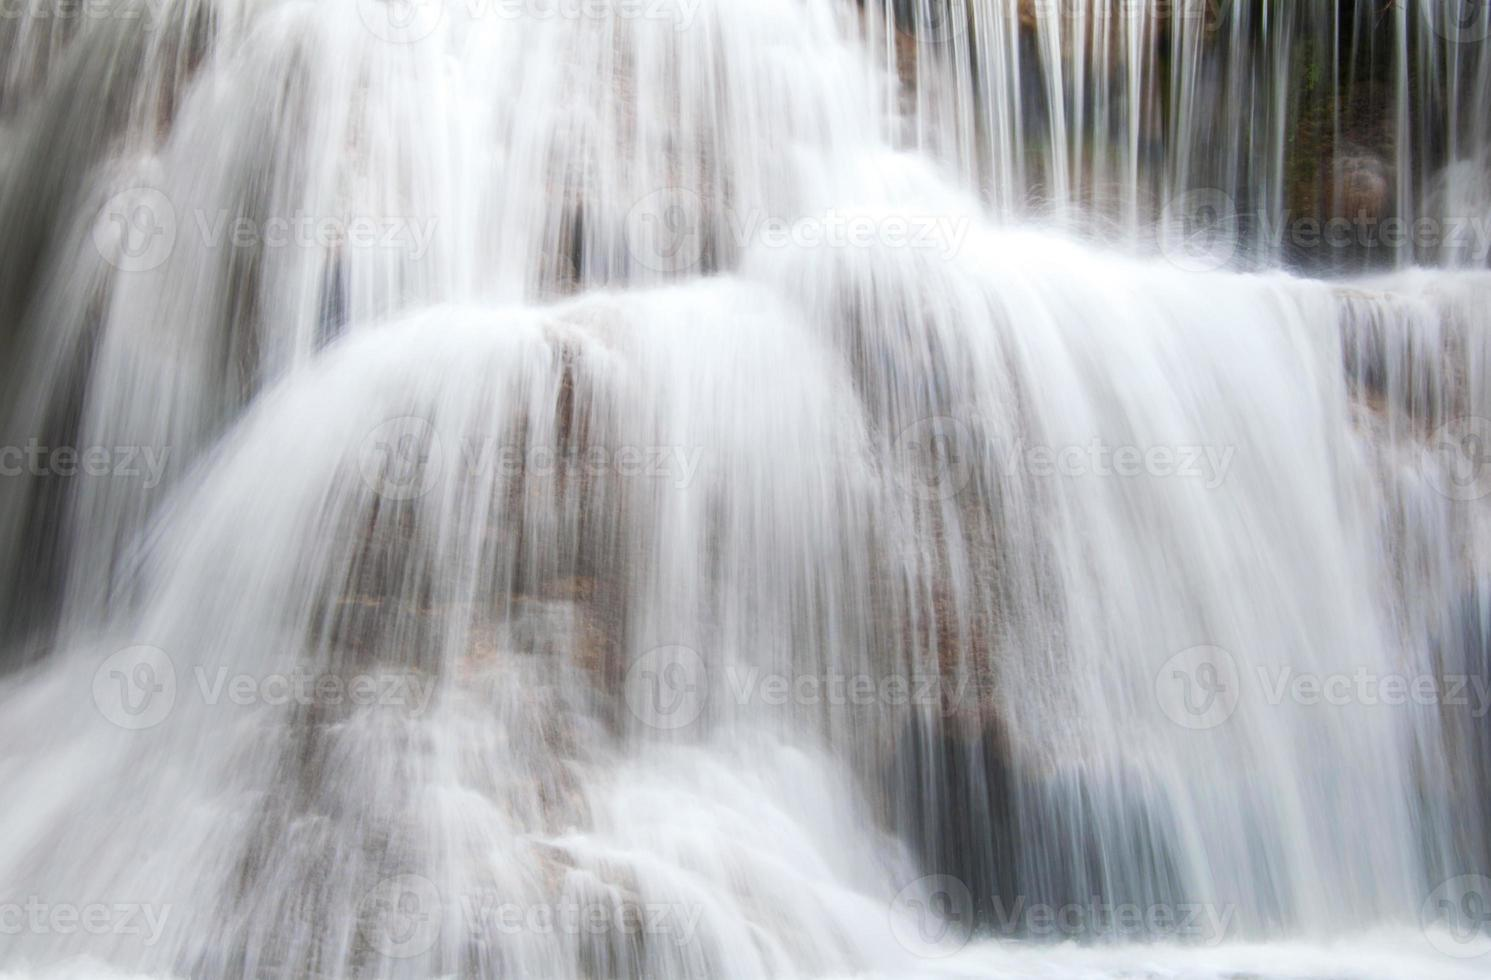 waterval in diepe regenwoud jungle in nationaal park, foto